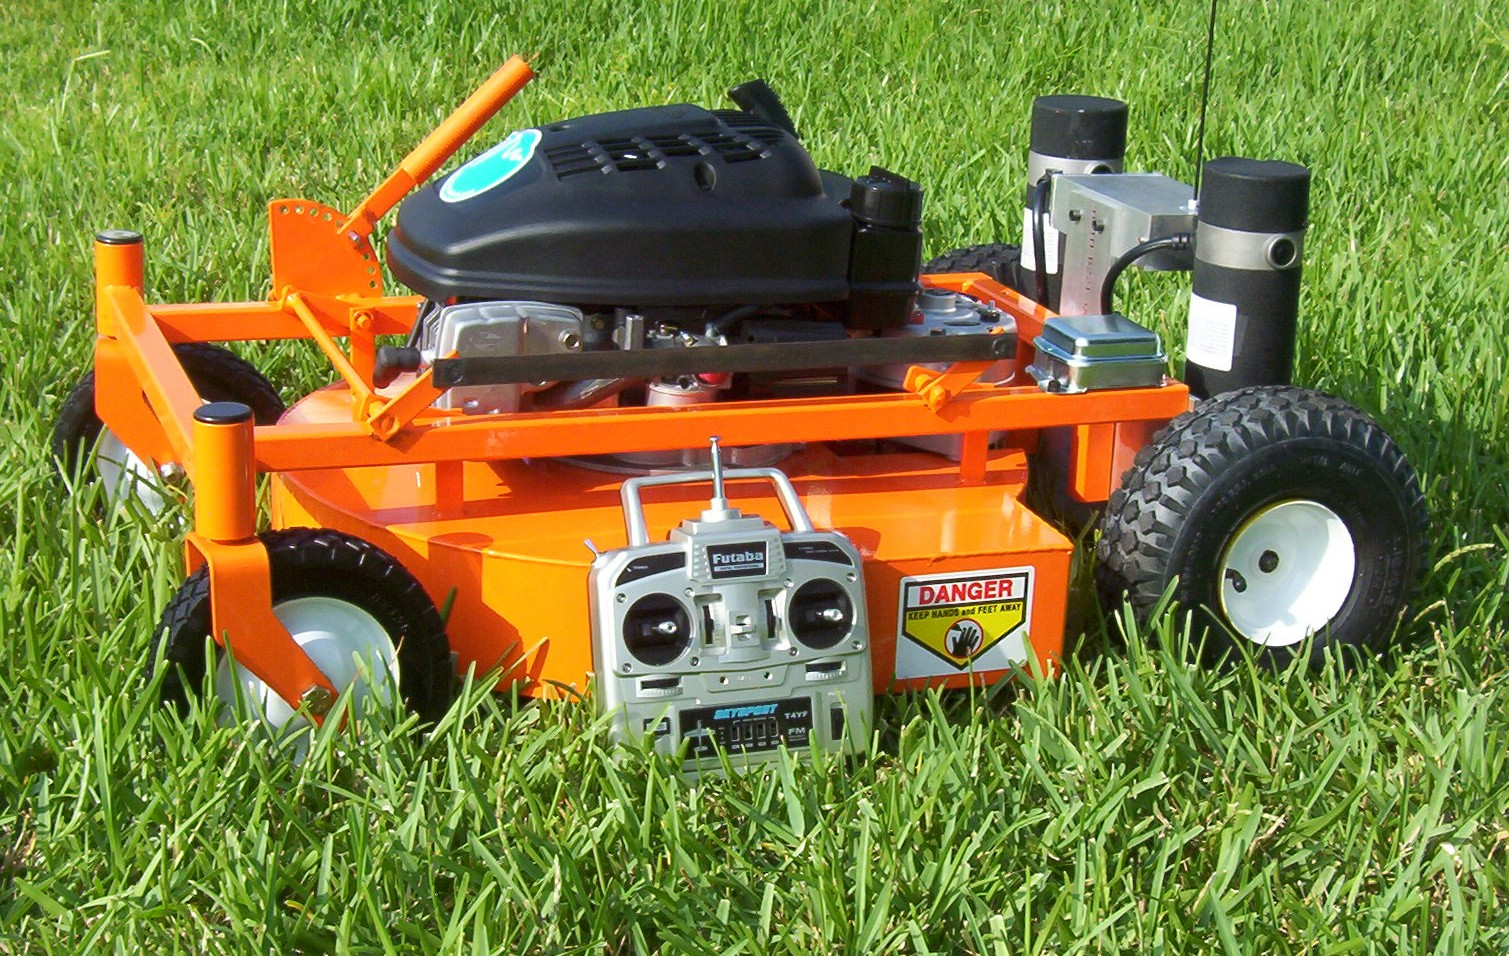 Evatech Remote Controlled Lawnmower